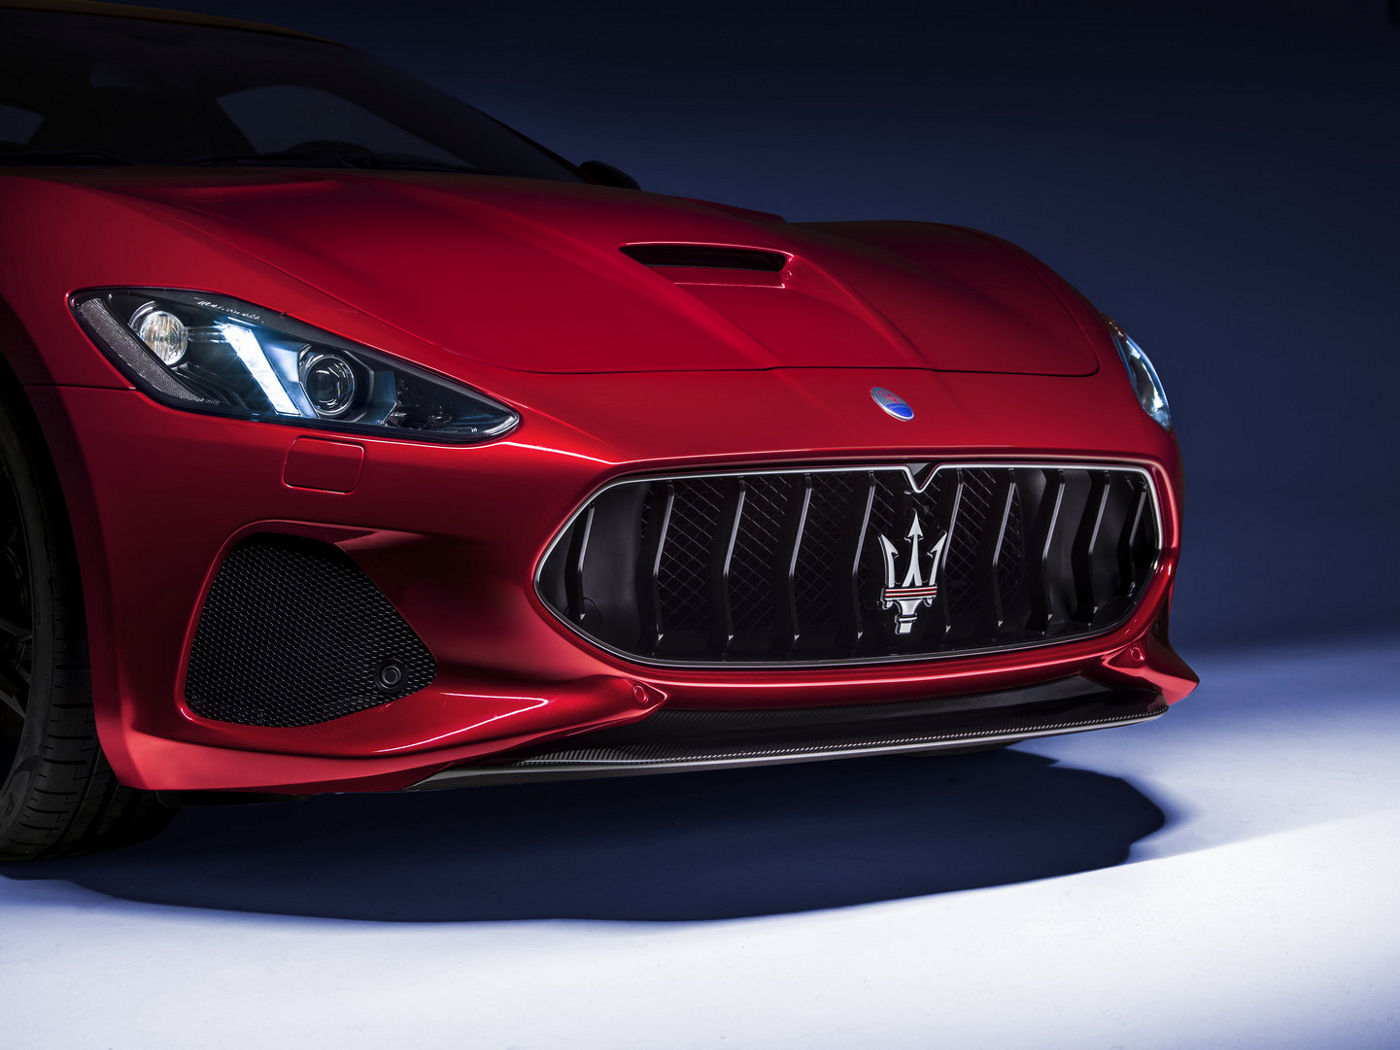 Red Maserati GranTurismo - front details with the trident emblem